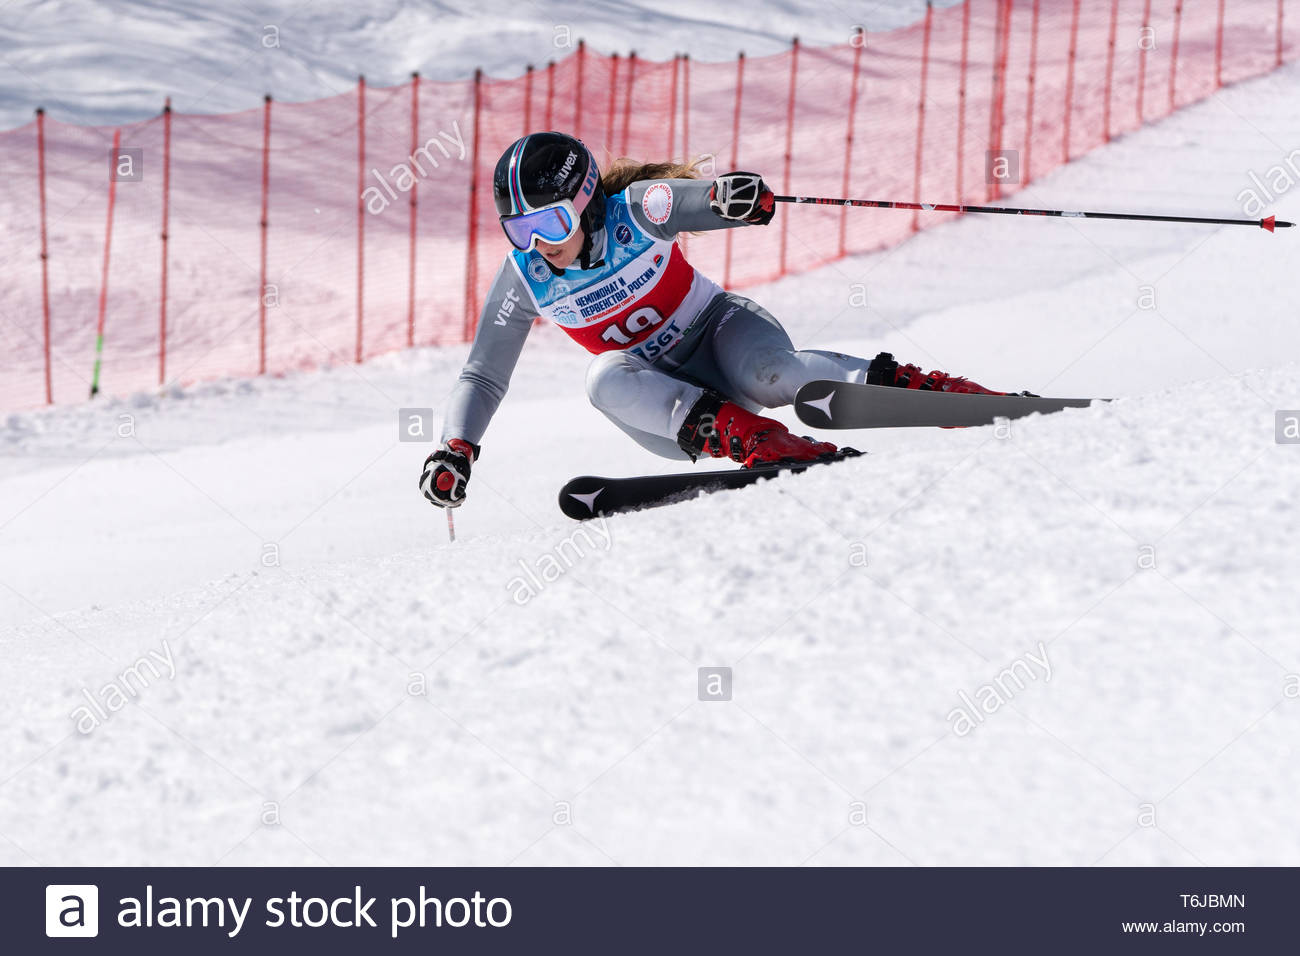 KAMCHATKA PENINSULA, RUSSIAN FEDERATION - APRIL 1, 2019: Mountain skier Fokina Milena (Kamchatka Region) skiing down snowy mountain slope. Russian Wom - Stock Image